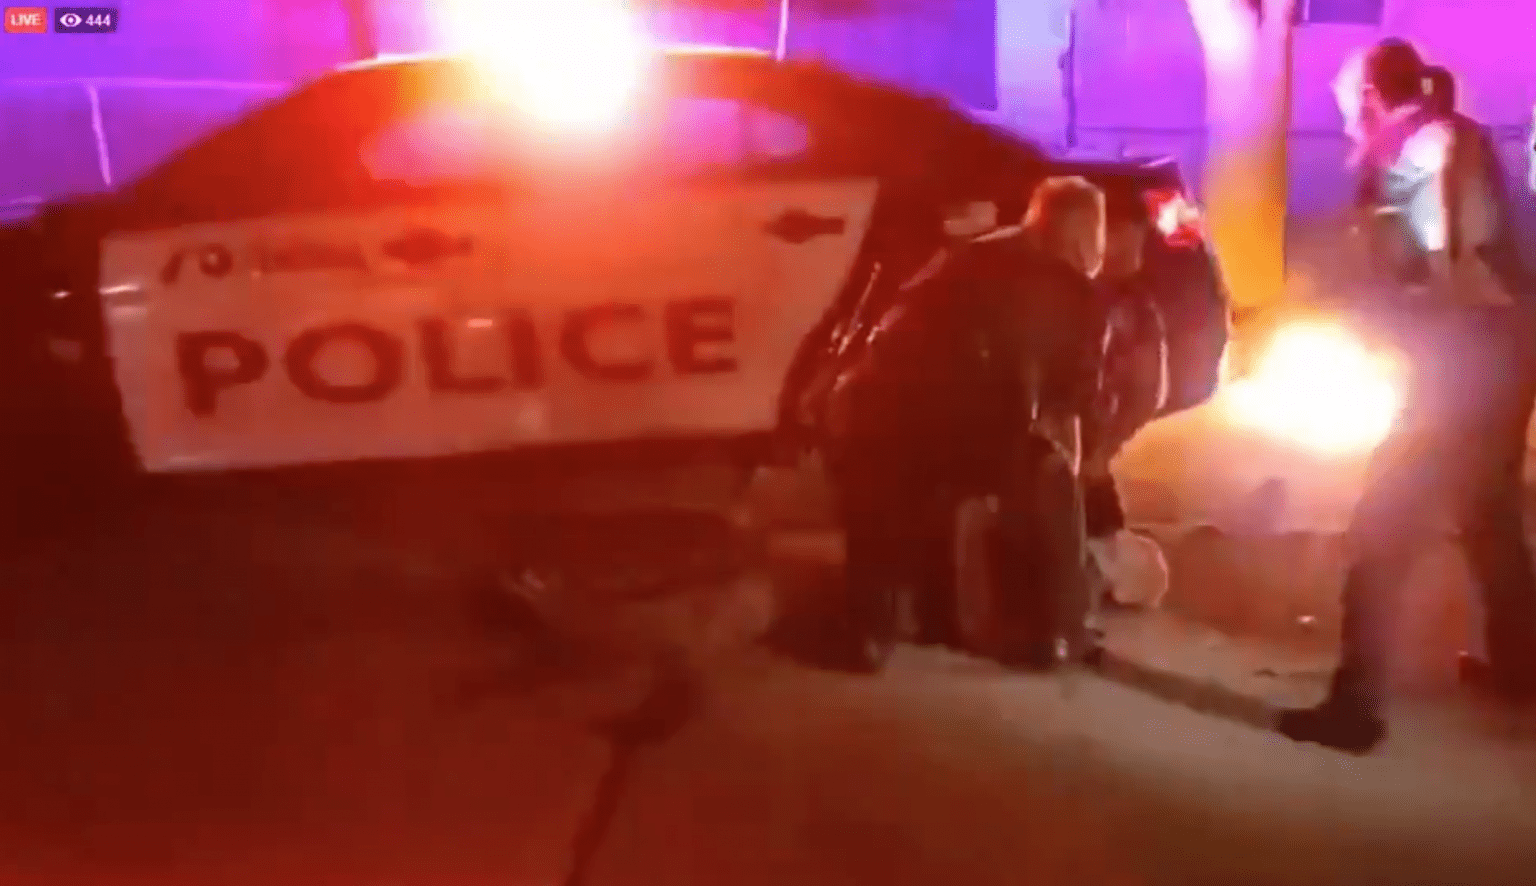 Riots erupt overnight in Wisconsin, police violently attacked, 'Bail Fund' offers freedom to arrested criminals